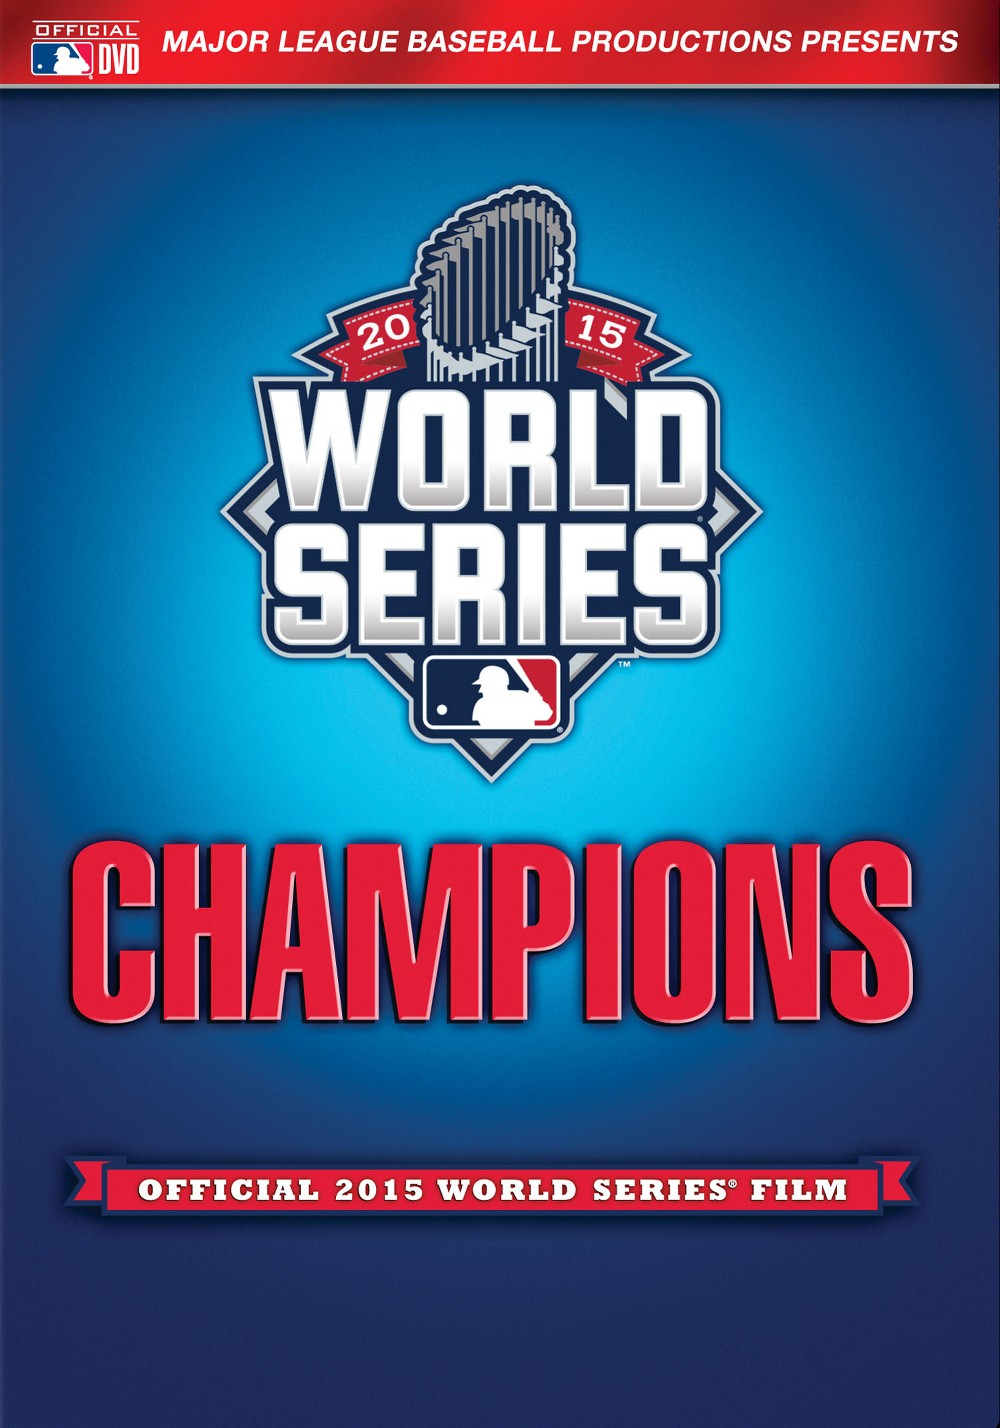 2015 World Series Champions: Official 2015 World Series' Film